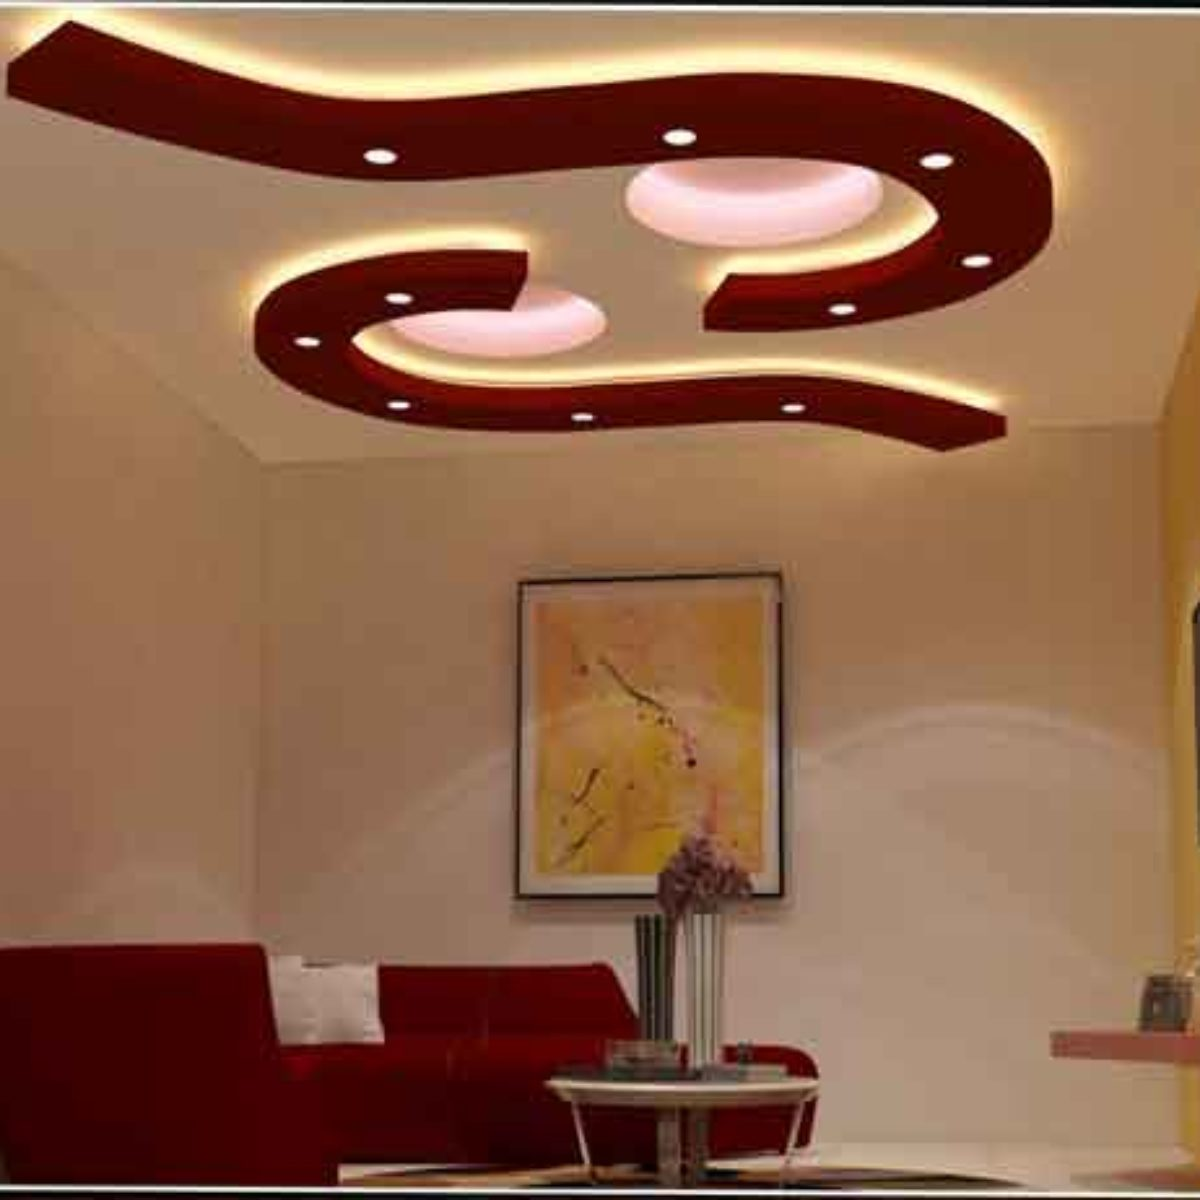 Awesome Bedroom Pop Design In India Wallpaper Decor And Ideas